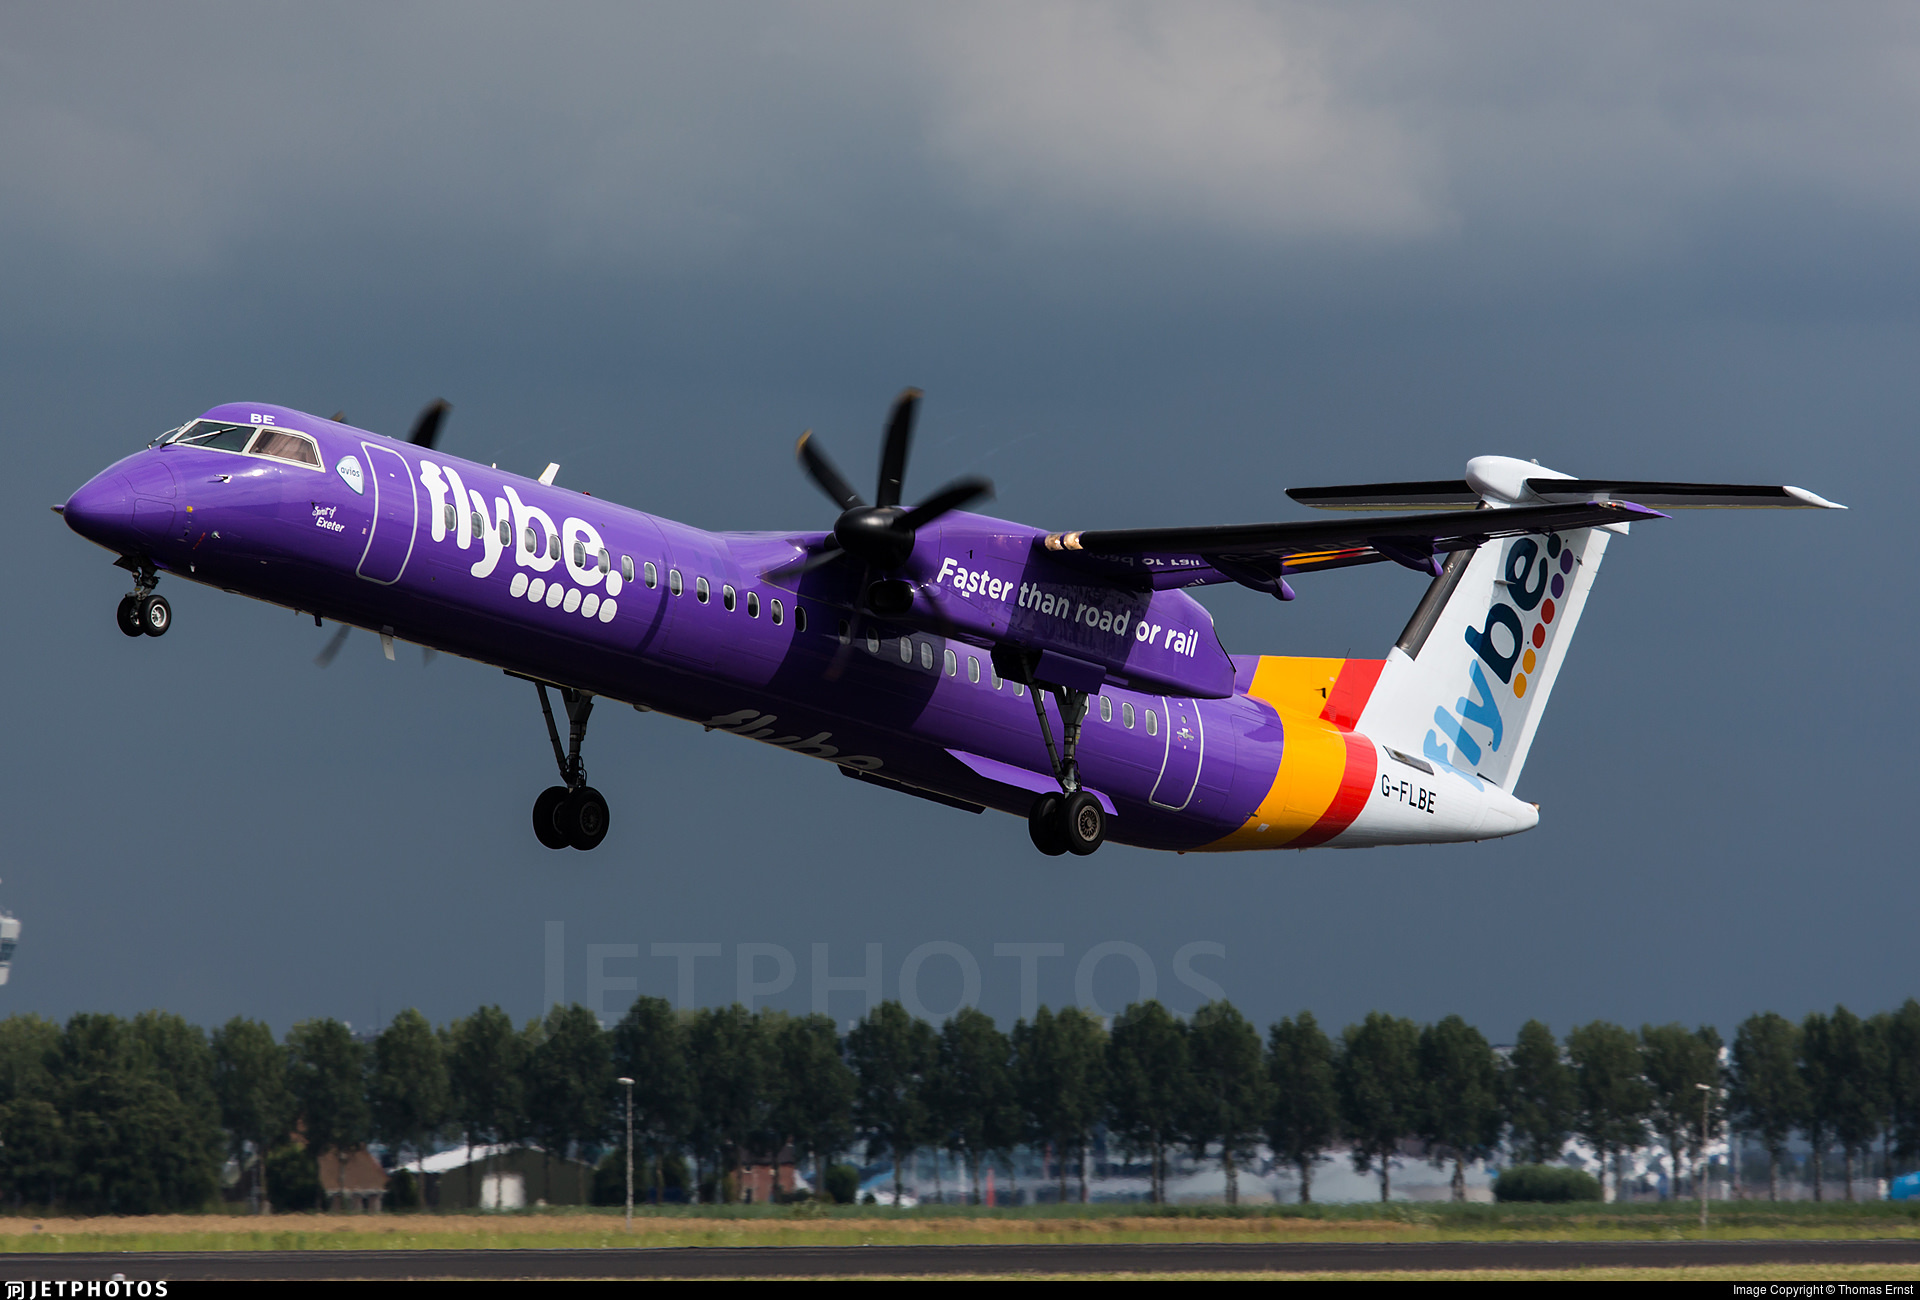 A Flybe Dash 8